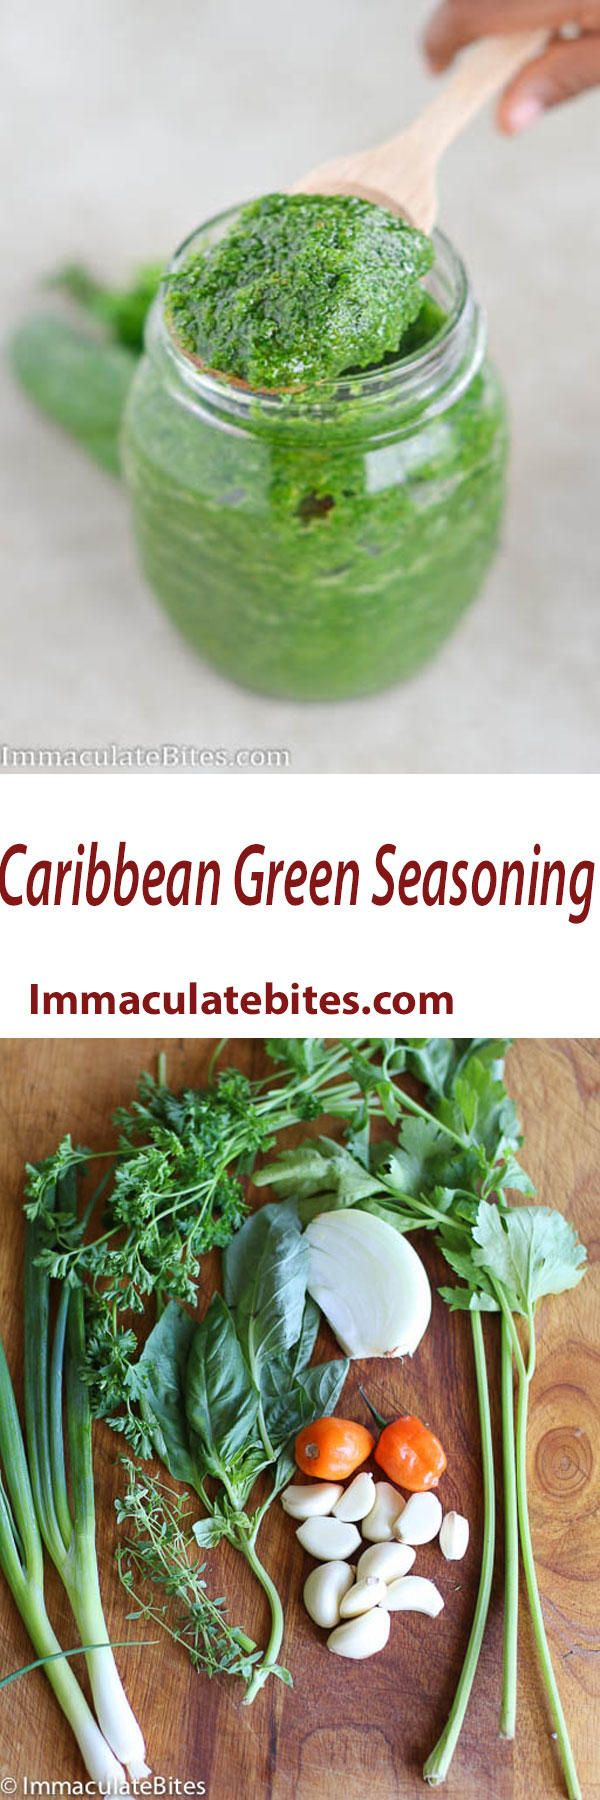 Caribbean  Green seasoning  It's quick and easy, paleo, Vegan , gluten-free . Simply Delicious on Grill foods and Stews.